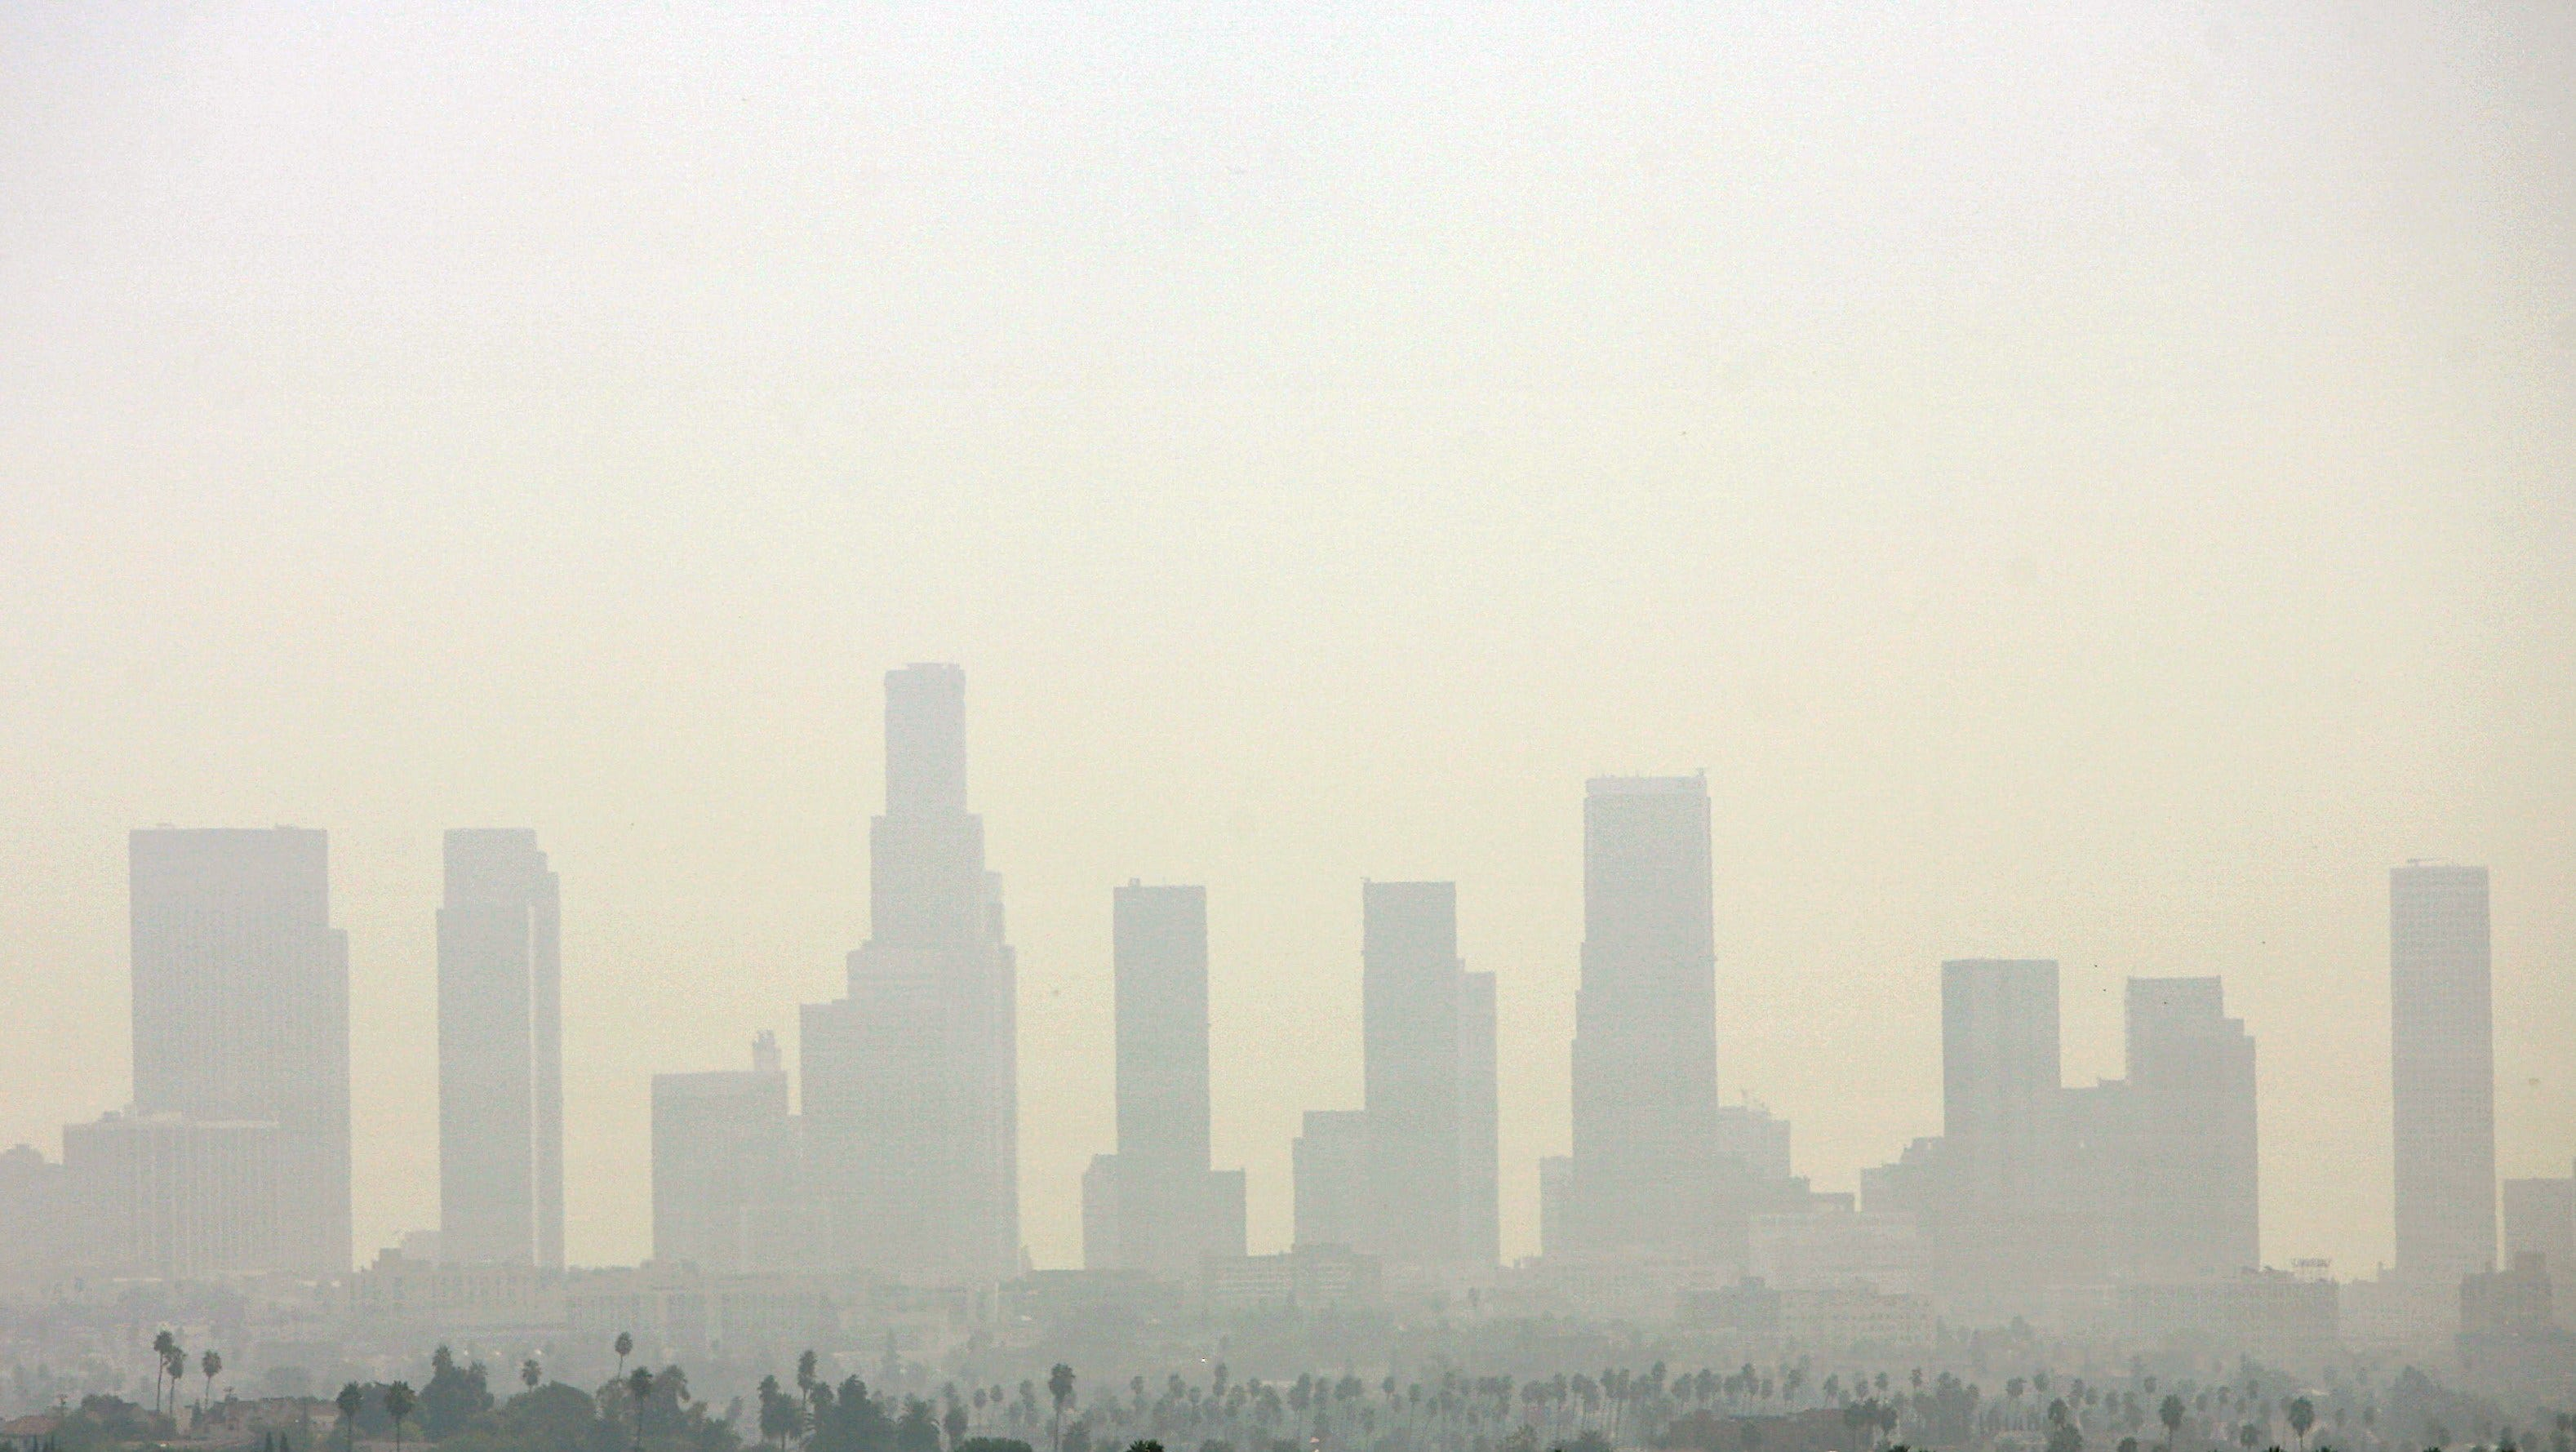 Over 4 of 10 Americans breathe polluted air, report says. And people of color are 61% more likely to be affected.